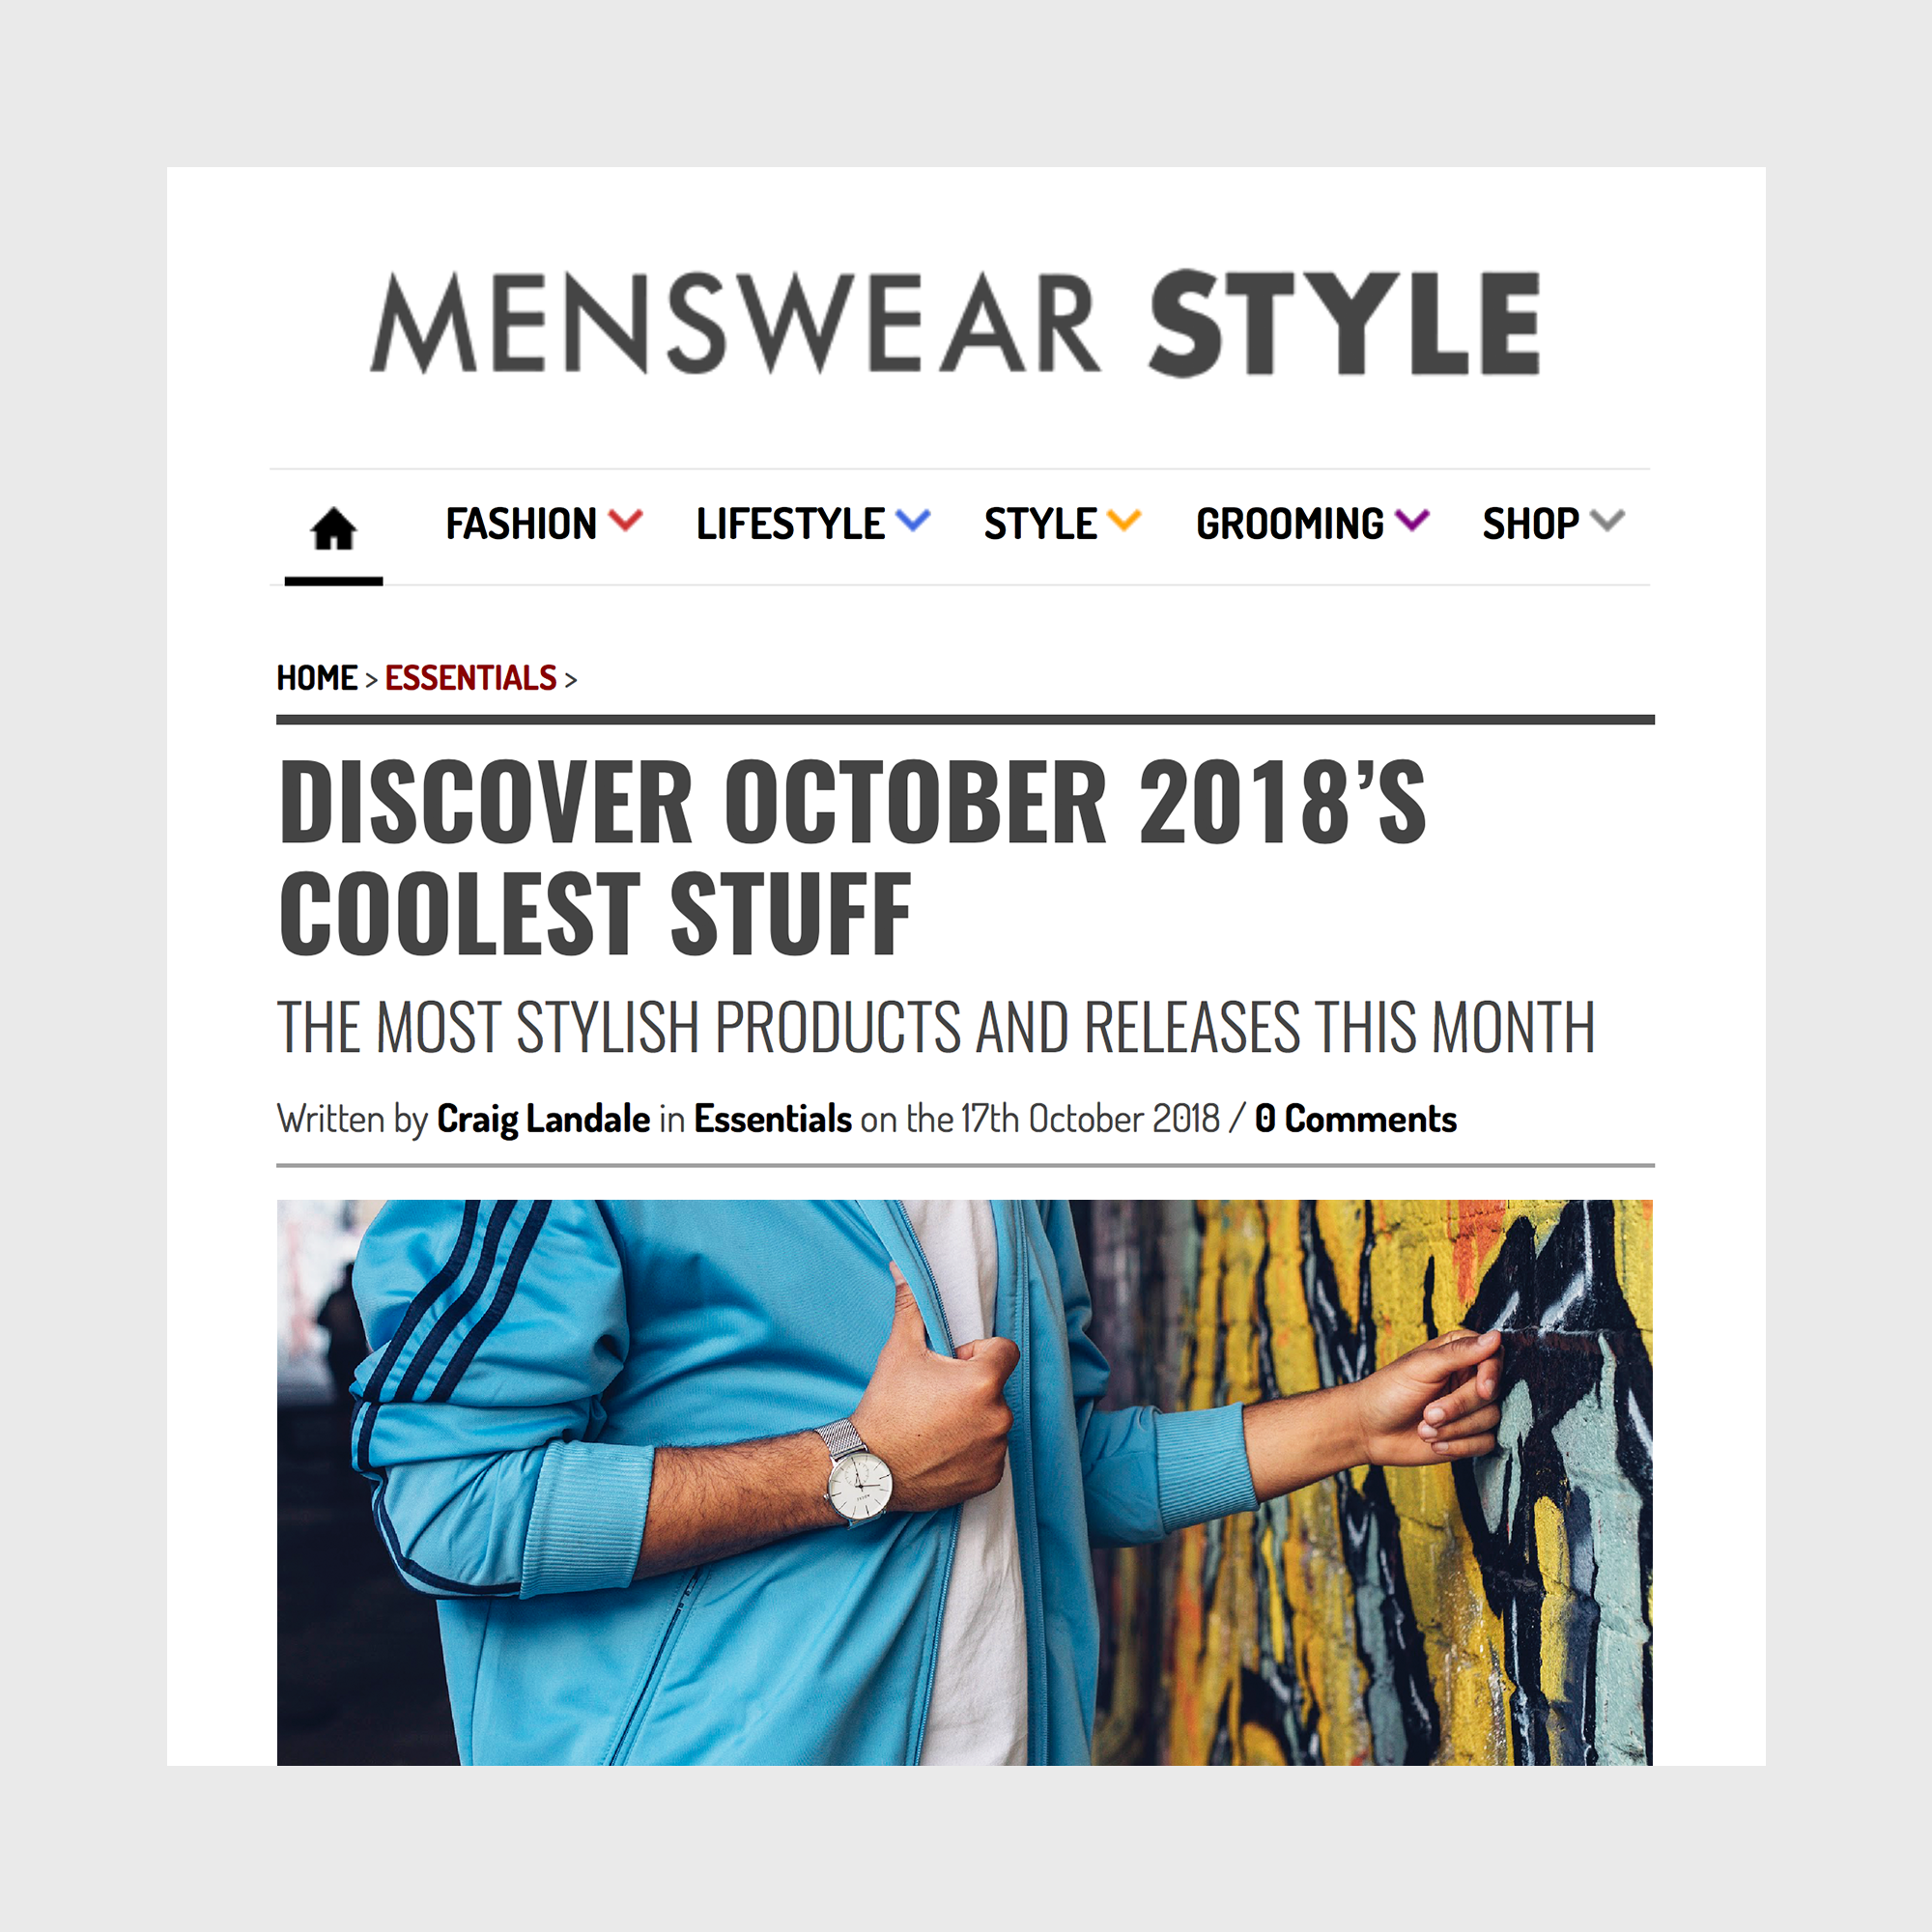 Menswear Style with ADEXE Watches